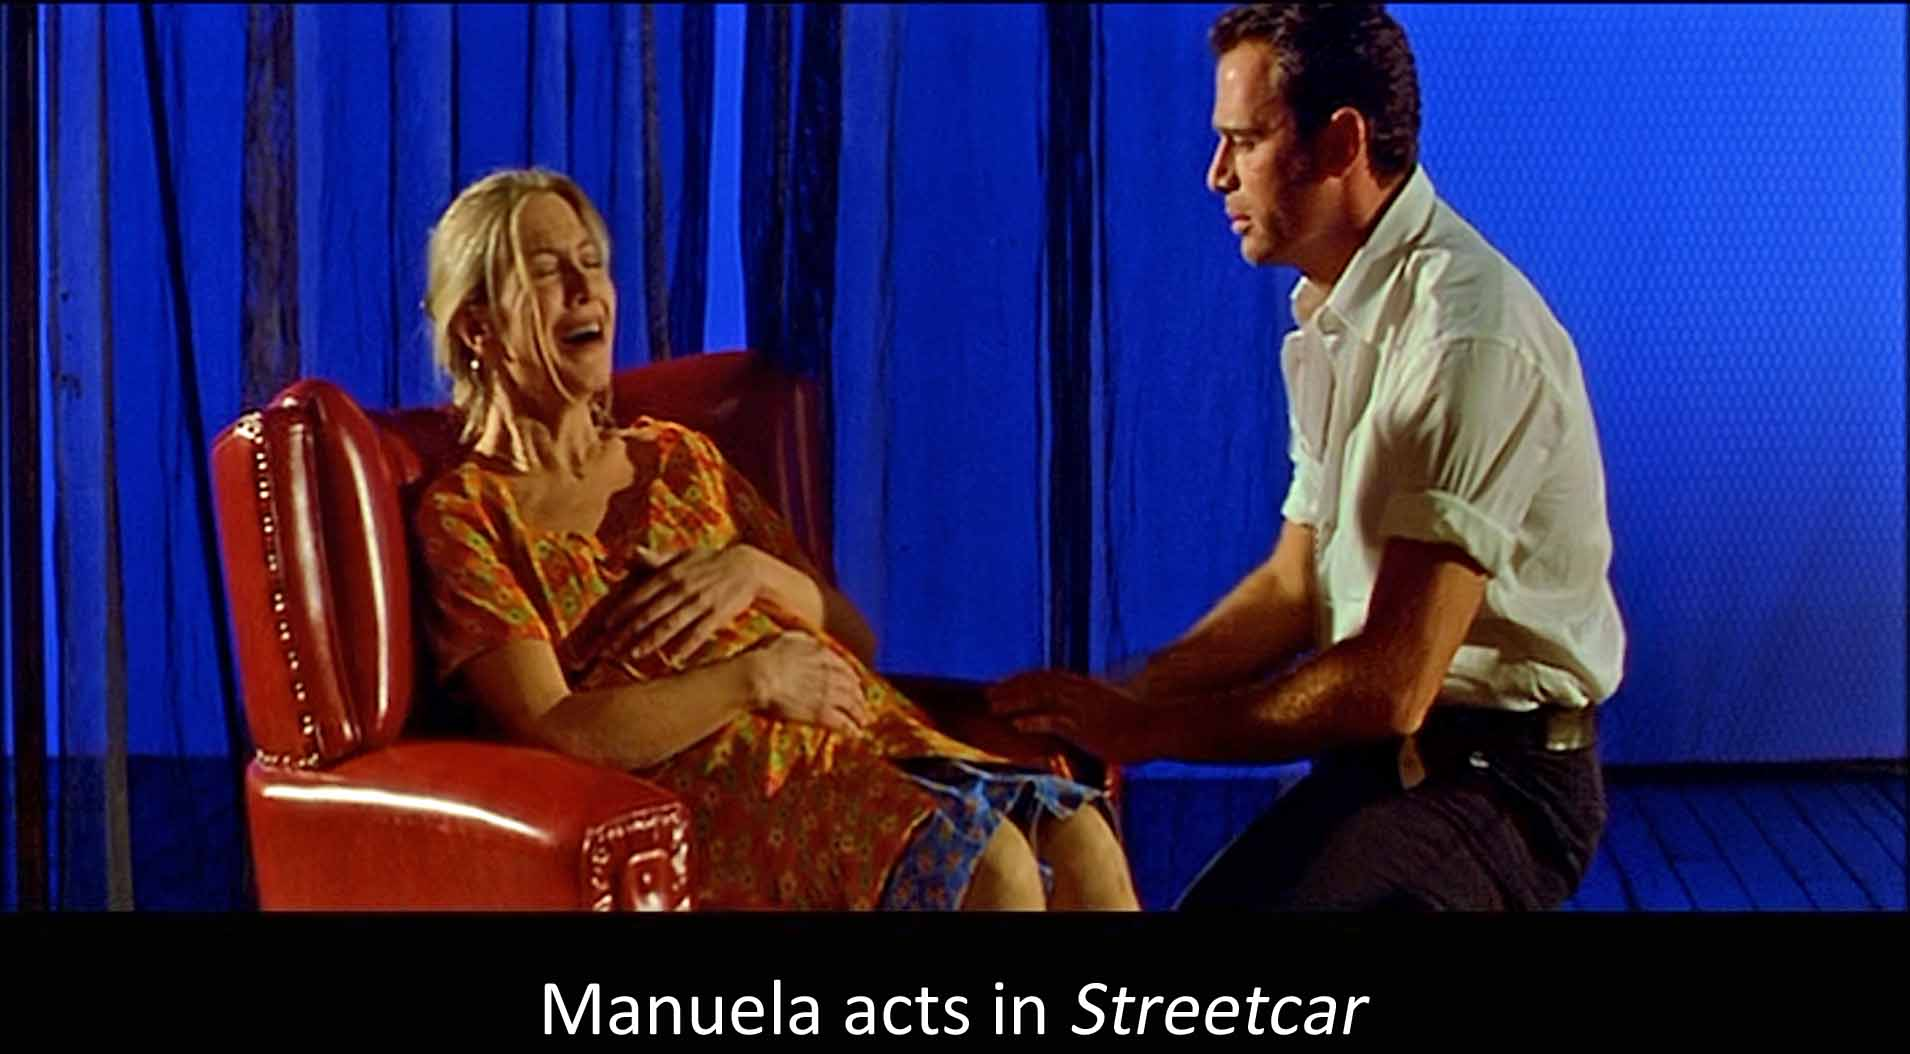 Manuela acts in Streetcar